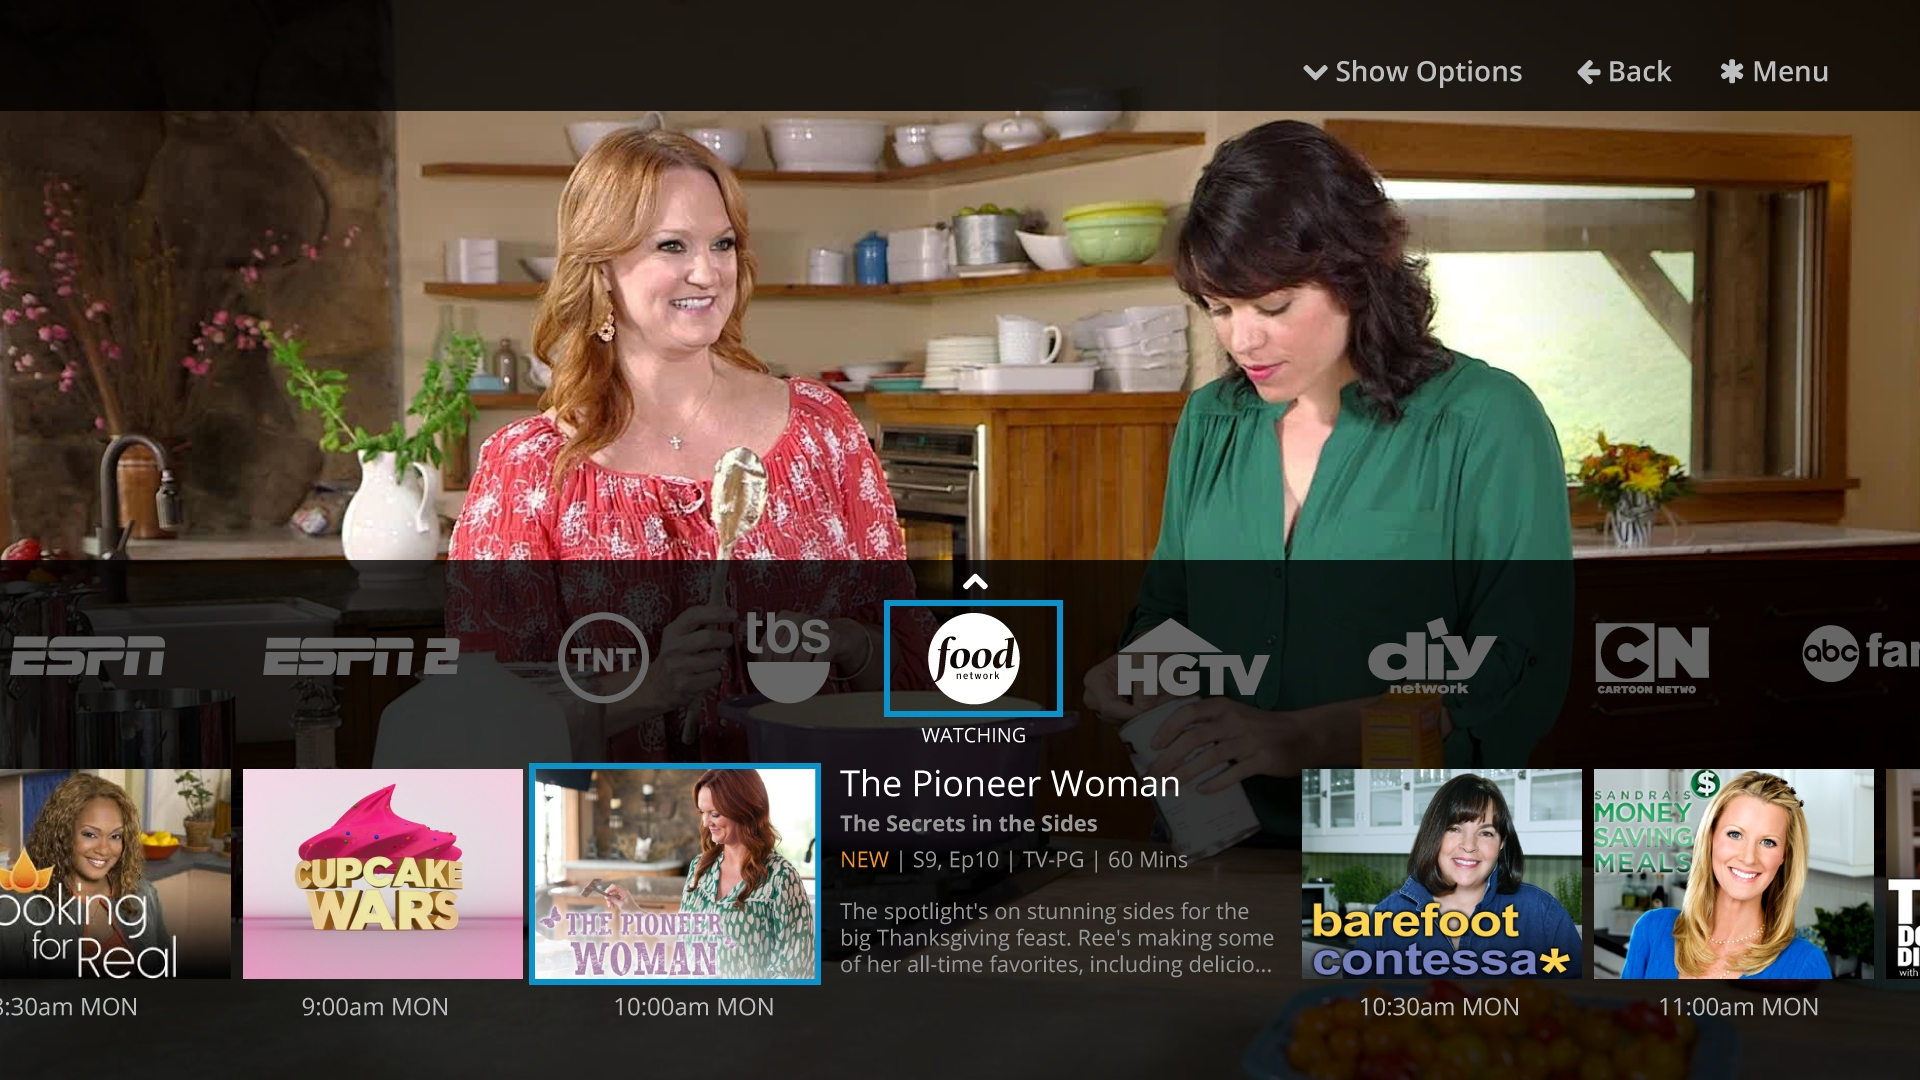 Sling Tv Launching Live Tv Streaming Service Starting At